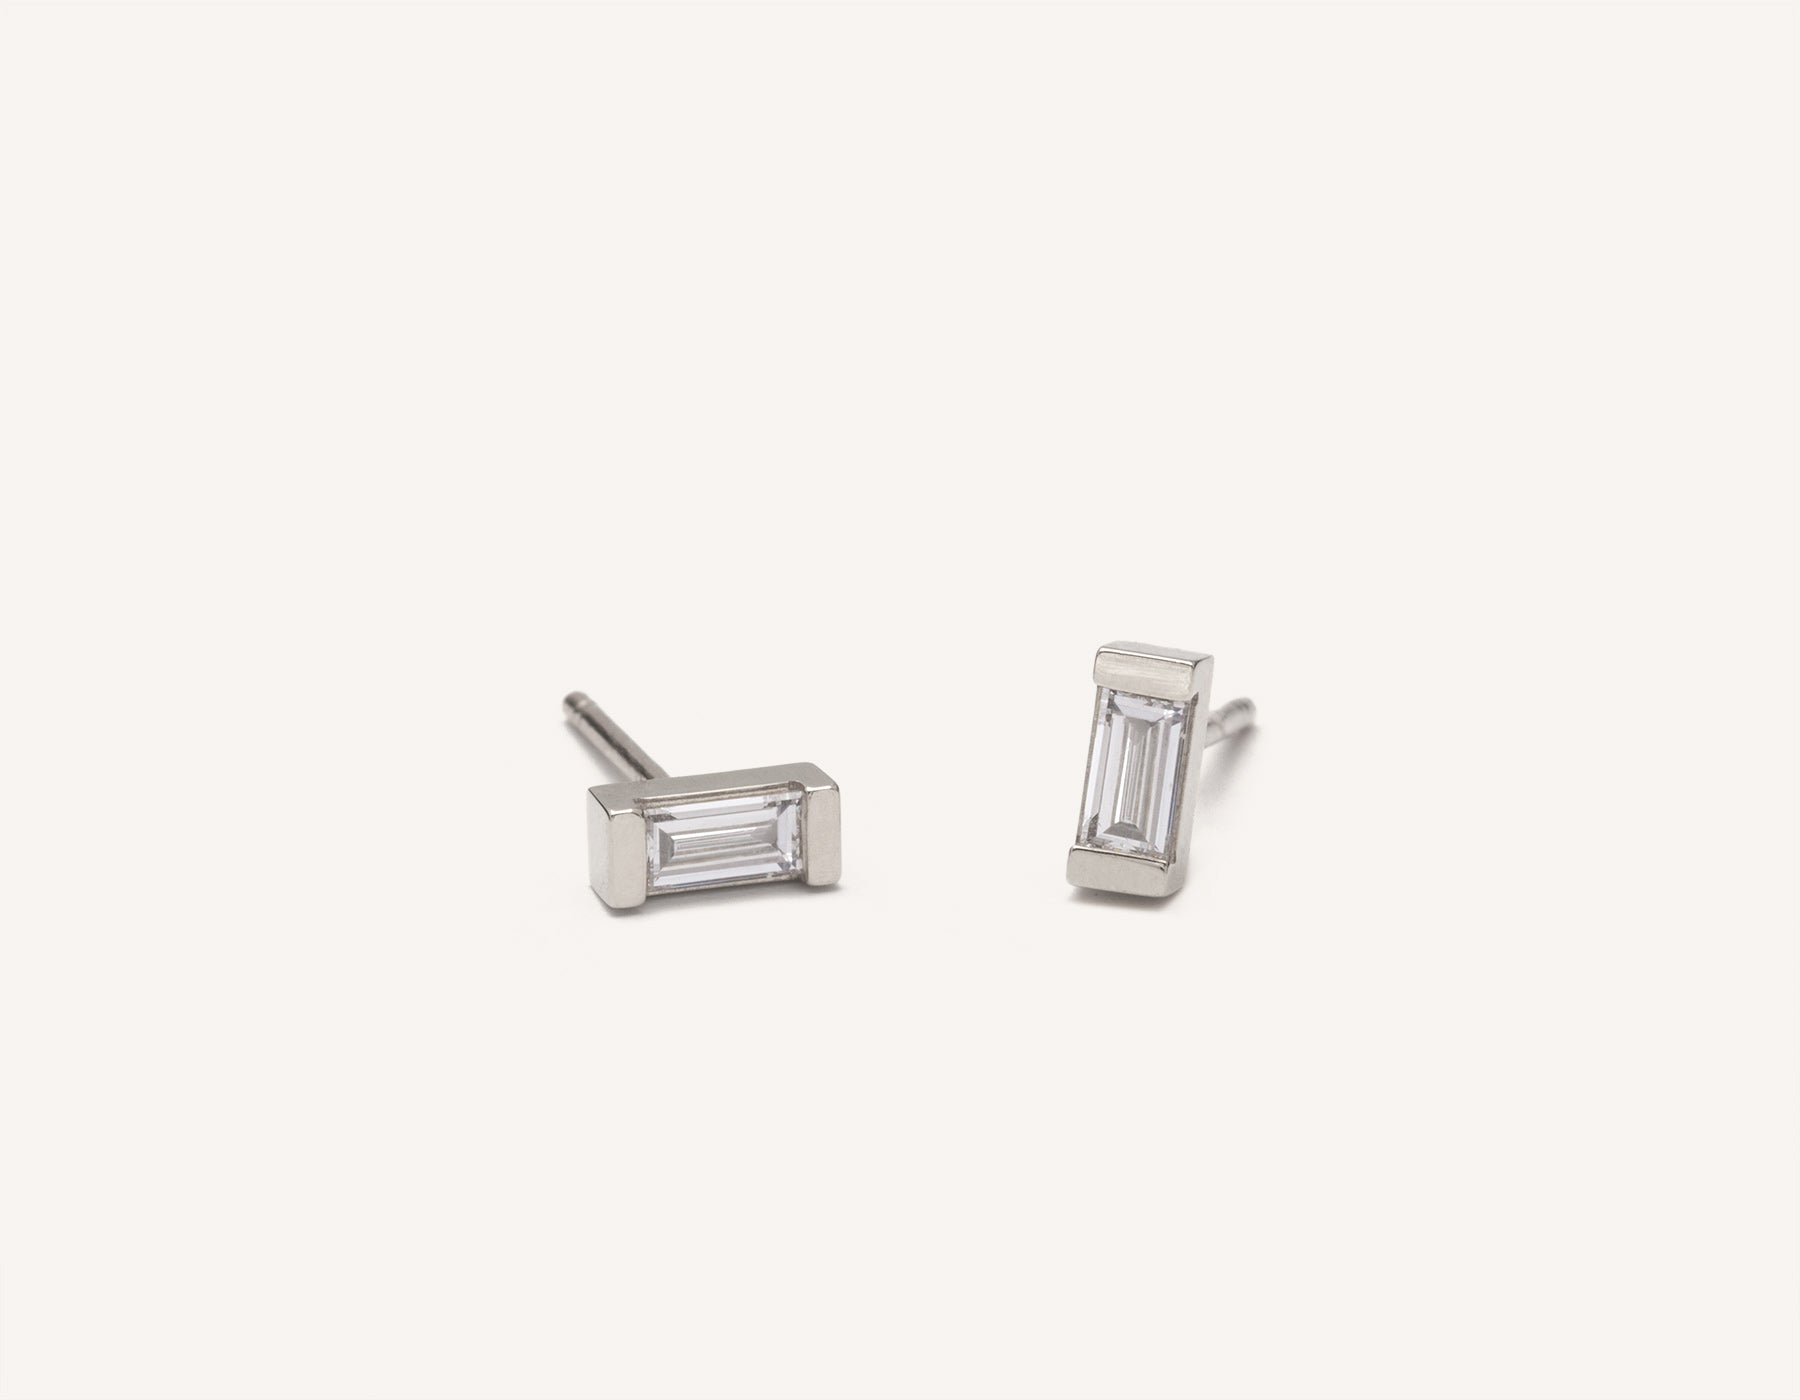 Simple elegant studs 14k solid gold Baguette Diamond Earrings from Vrai and Oro in a channel setting with a post backing,14K White Gold